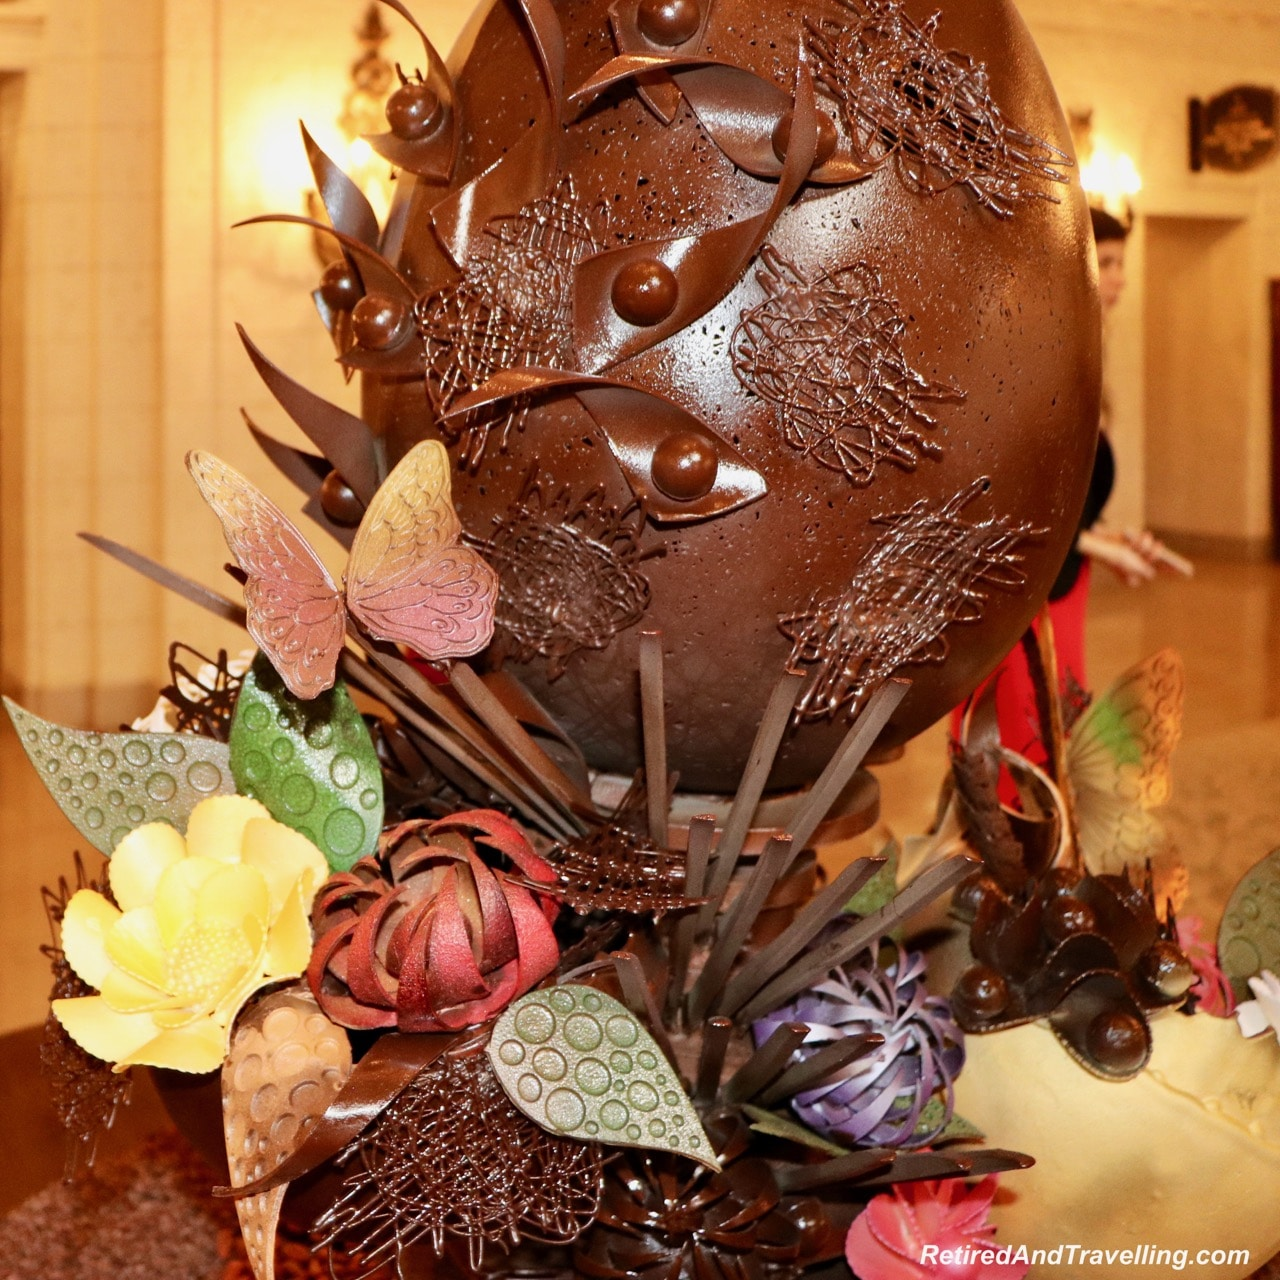 St Regis Lobby Easter Chocolate - Afternoon Tea and Champagne at St Regis Washington.jpg